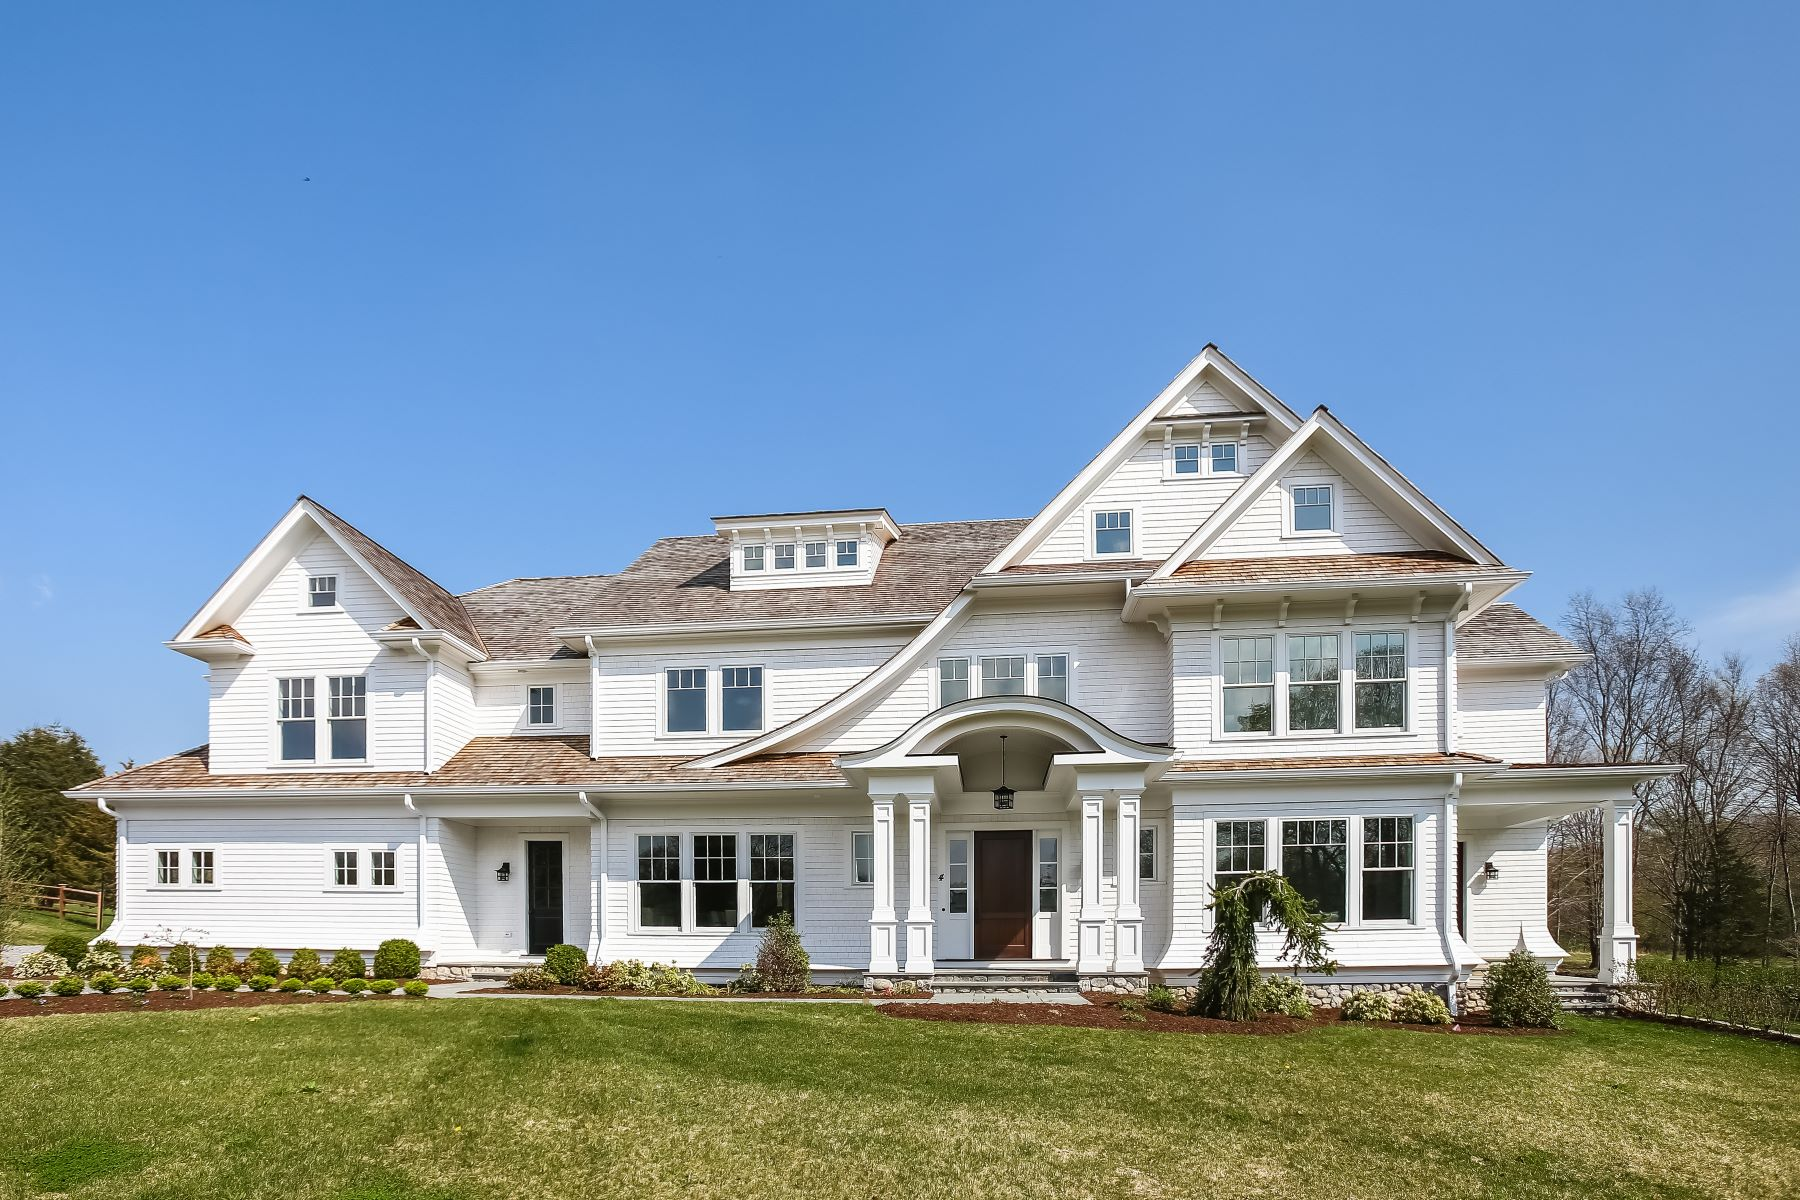 Single Family Homes for Sale at Majestically Sited at the Top of Middlebrook Meadow 4 Middlebrook Lane Wilton, Connecticut 06897 United States